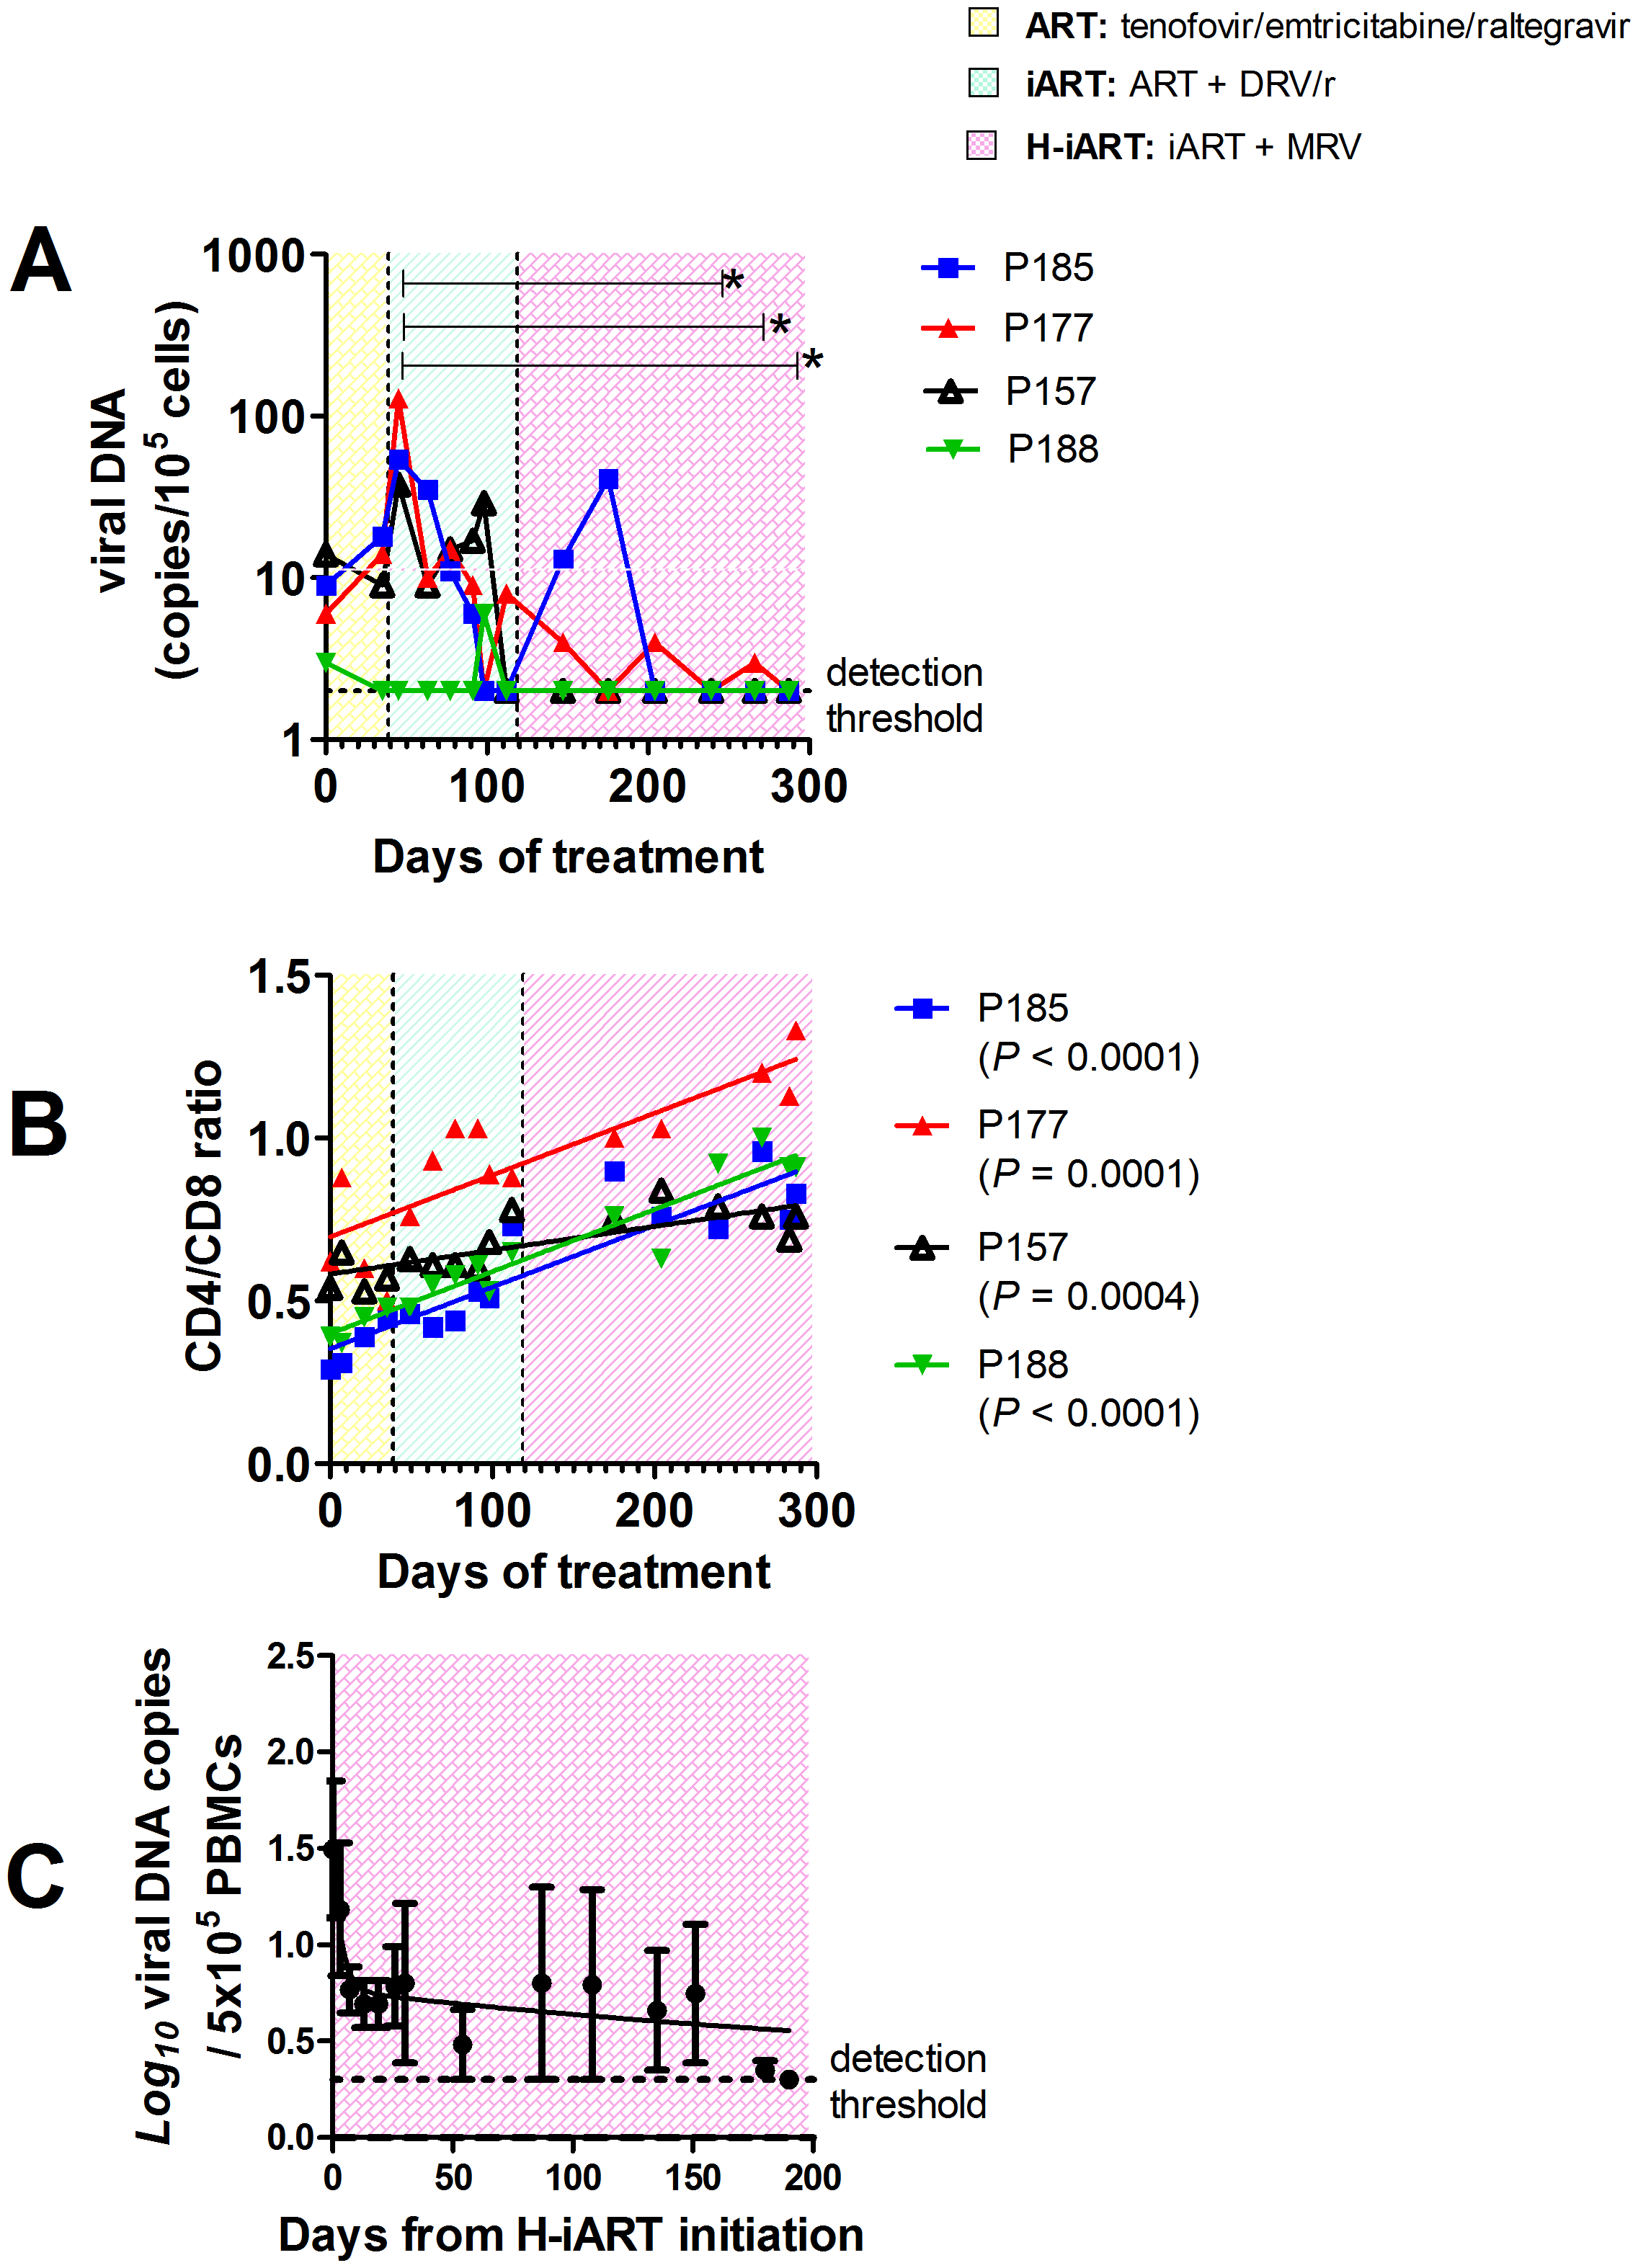 H-iART decreases viral DNA in PBMCs and increases the CD4/CD8 ratio.